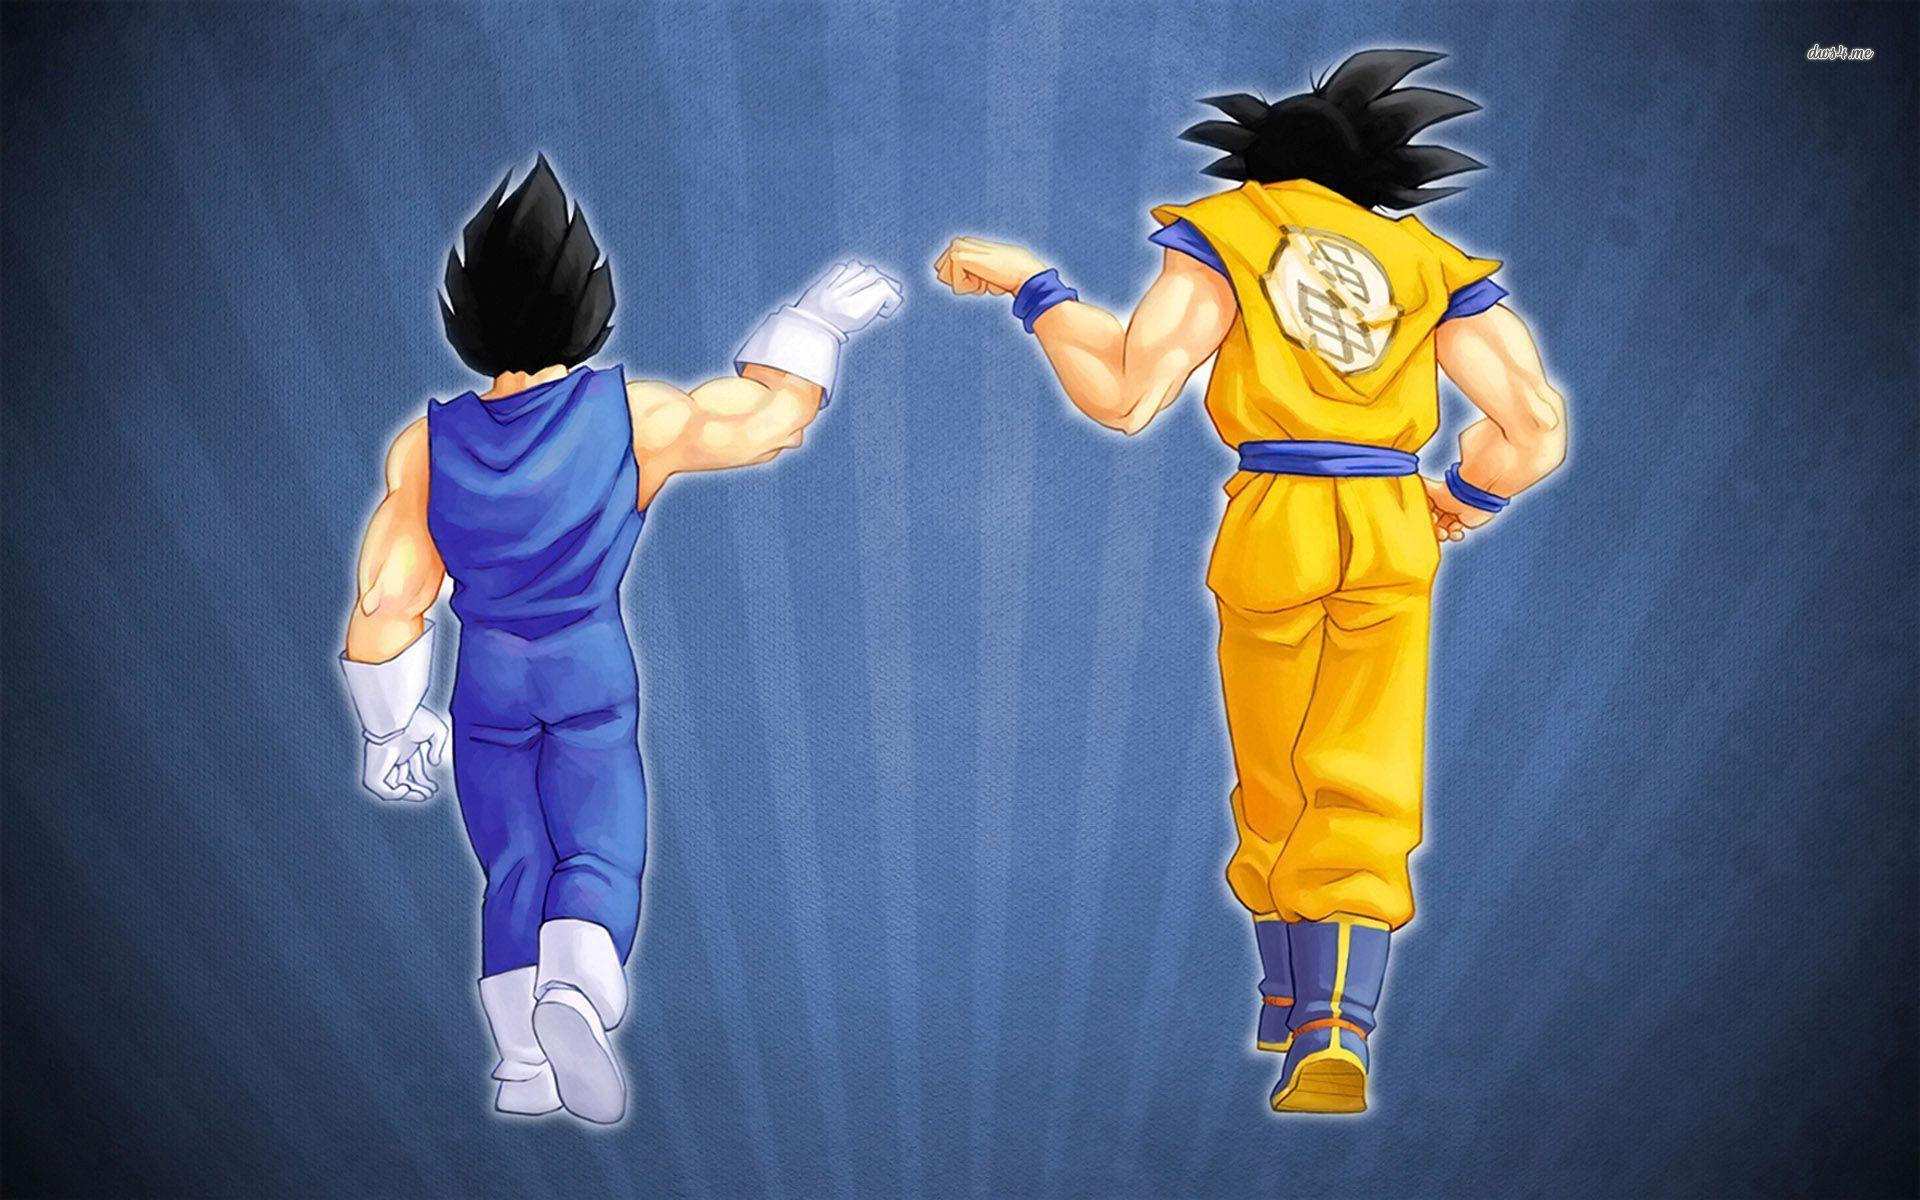 Goku and Vegeta fist bump Full HD Wallpaper and Background ...